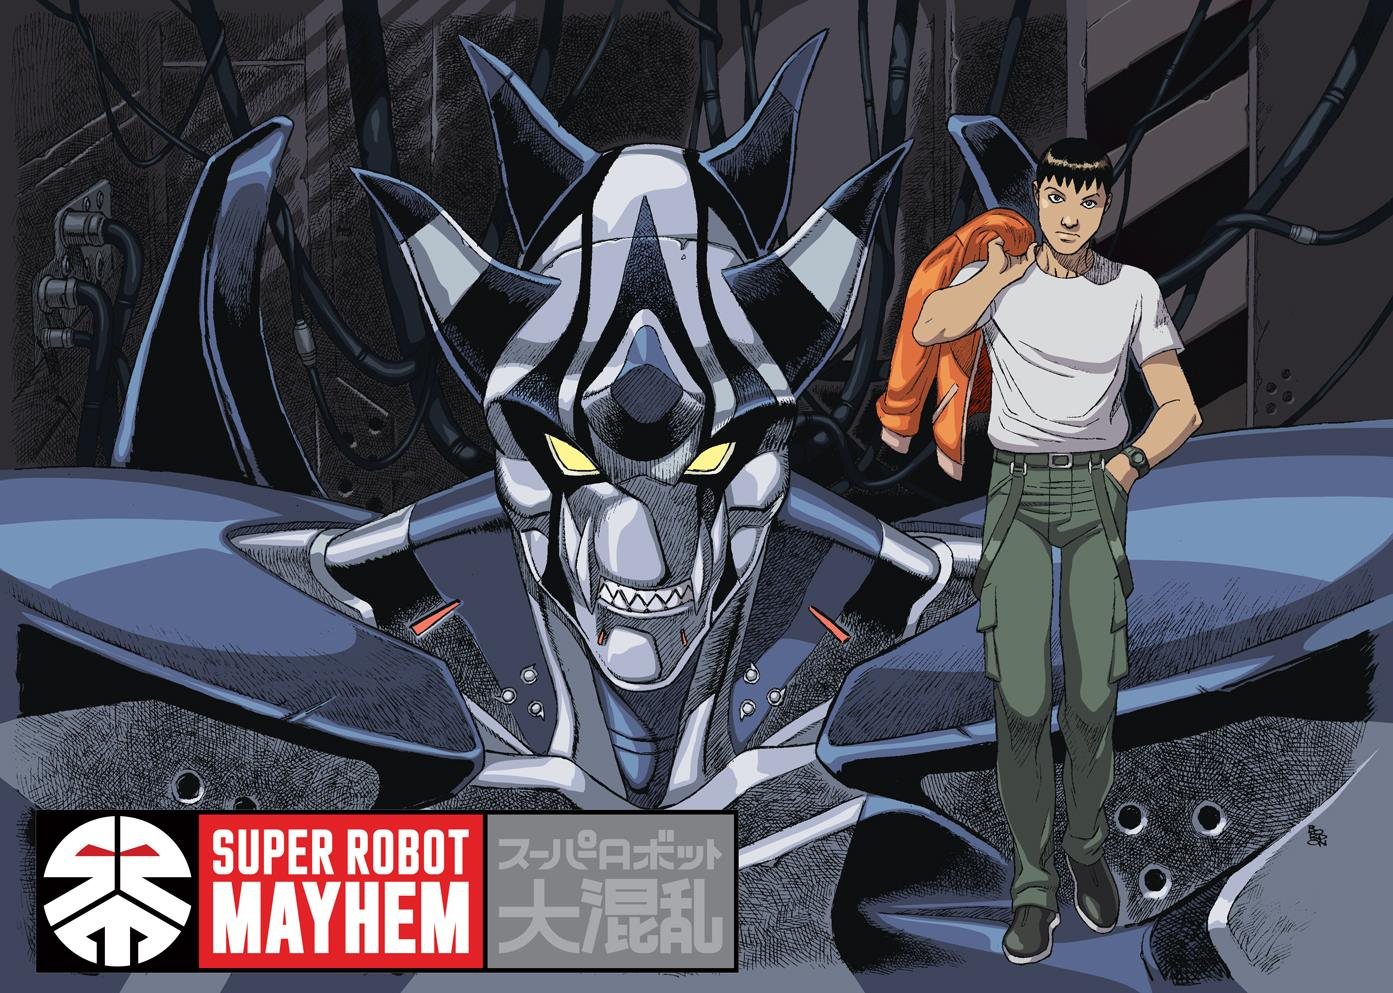 Super Robot Mayhem